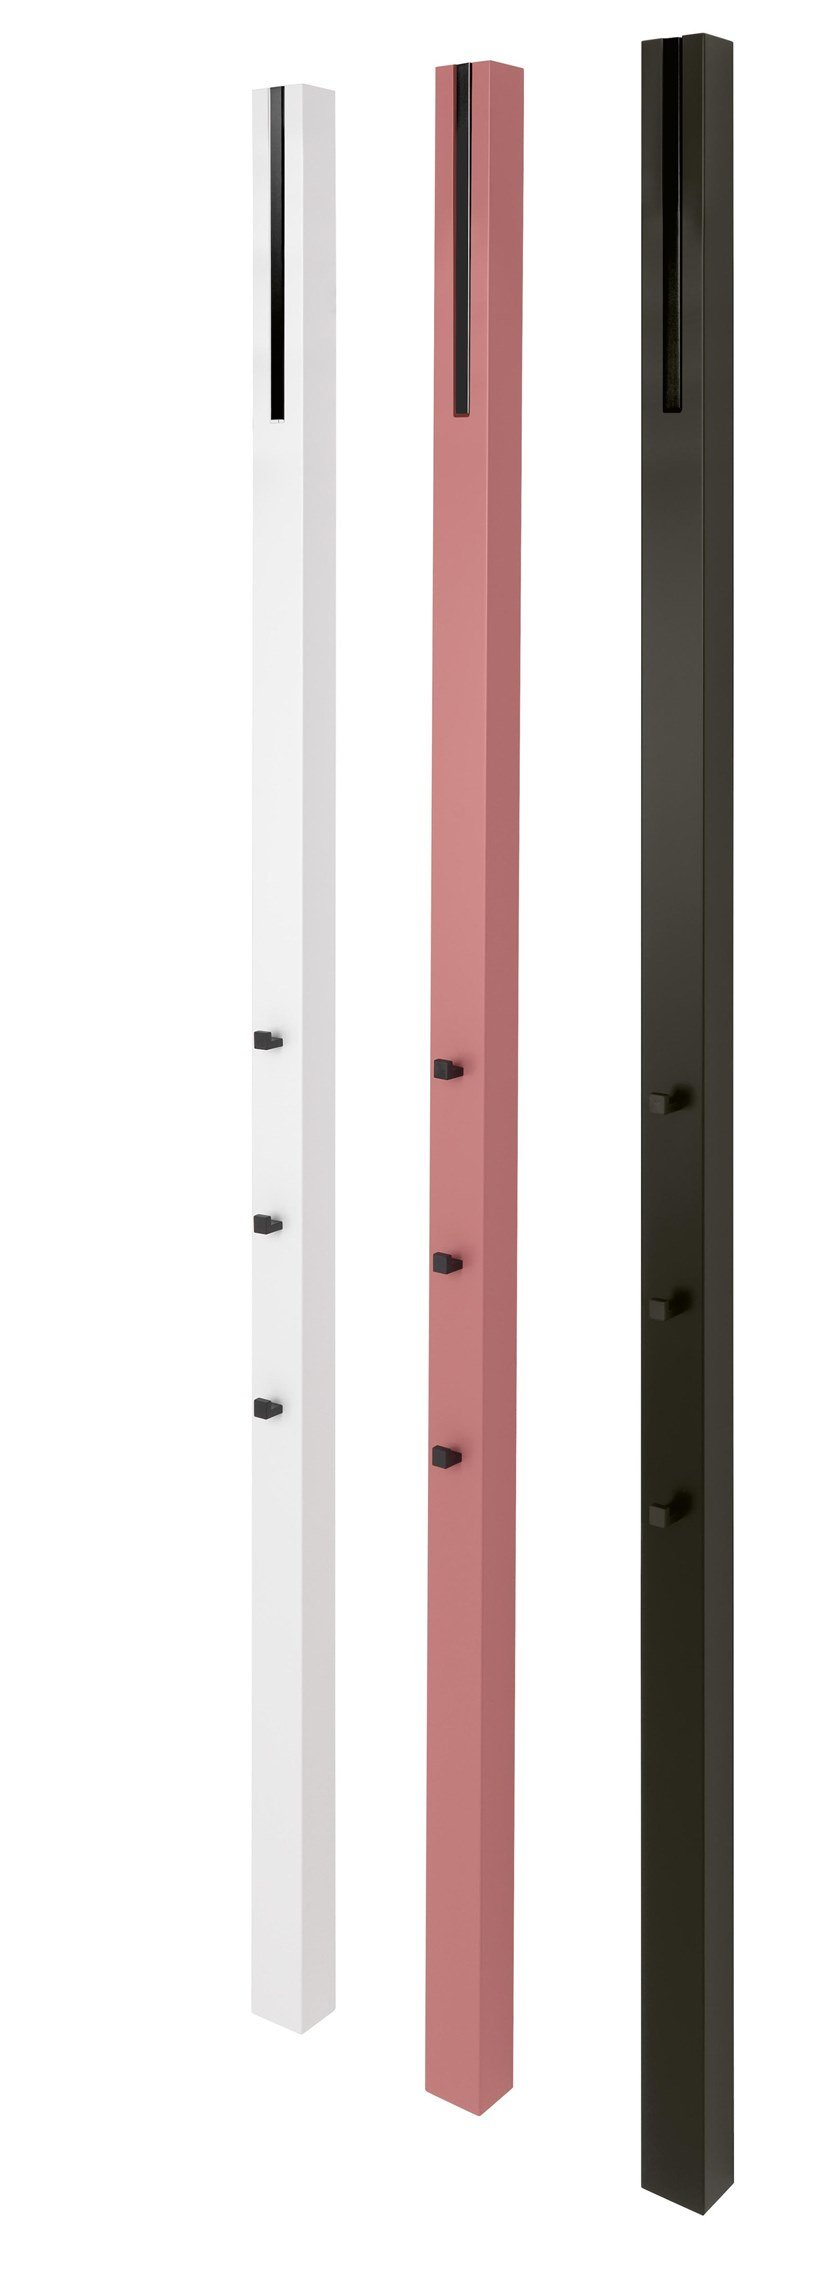 Line Coat Rack By Sch 246 Nbuch Design Apartment 8